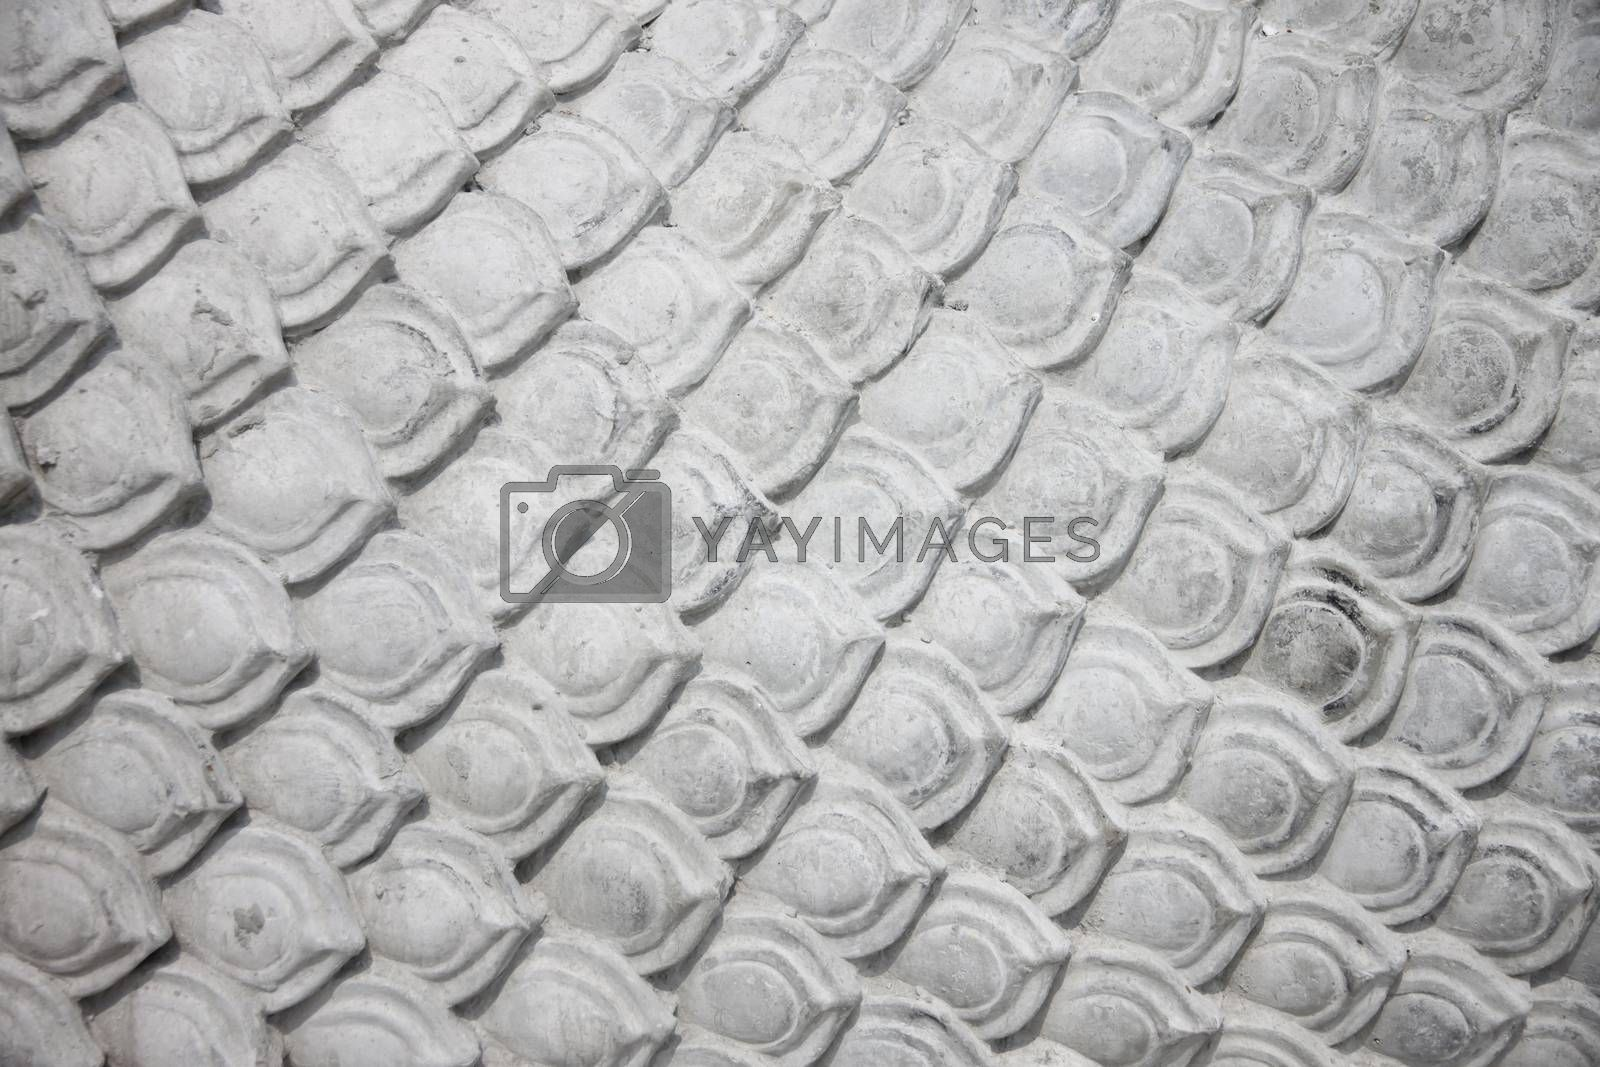 Patterns on cement floor of statue in construction. by meepoohyaphoto